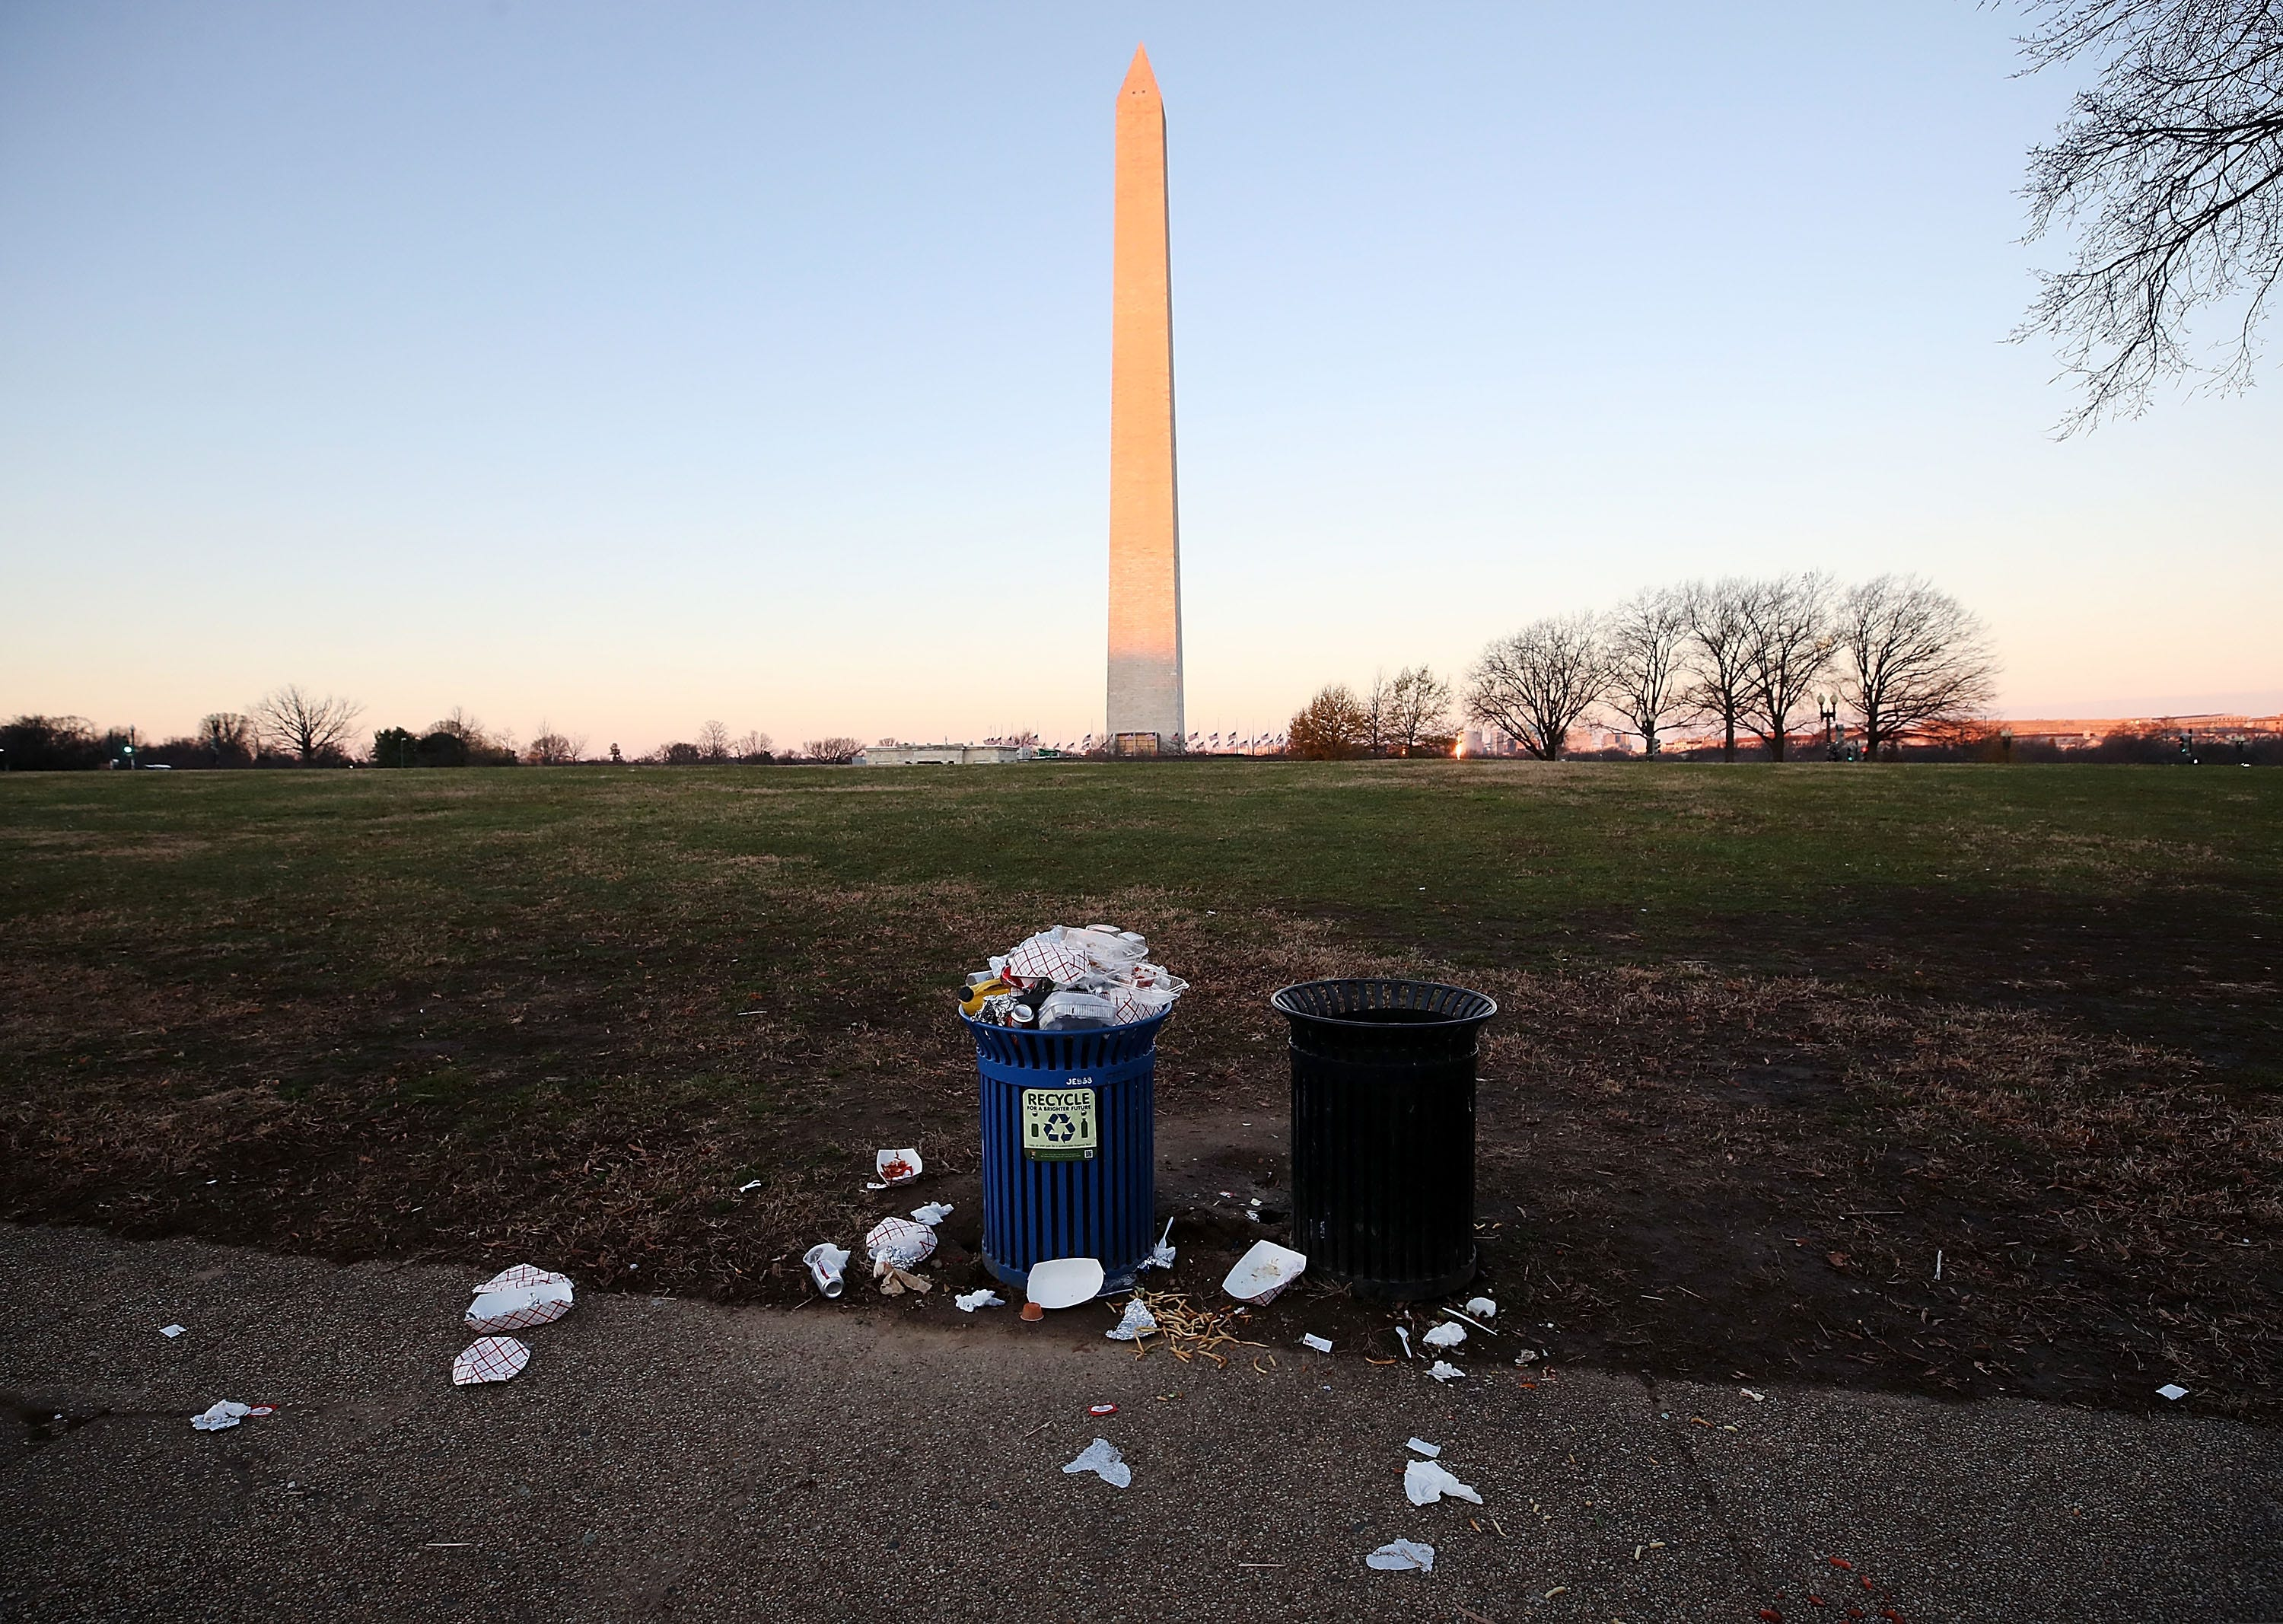 National Parks tap charities, concession operators, and the kindness of strangers to take out the trash